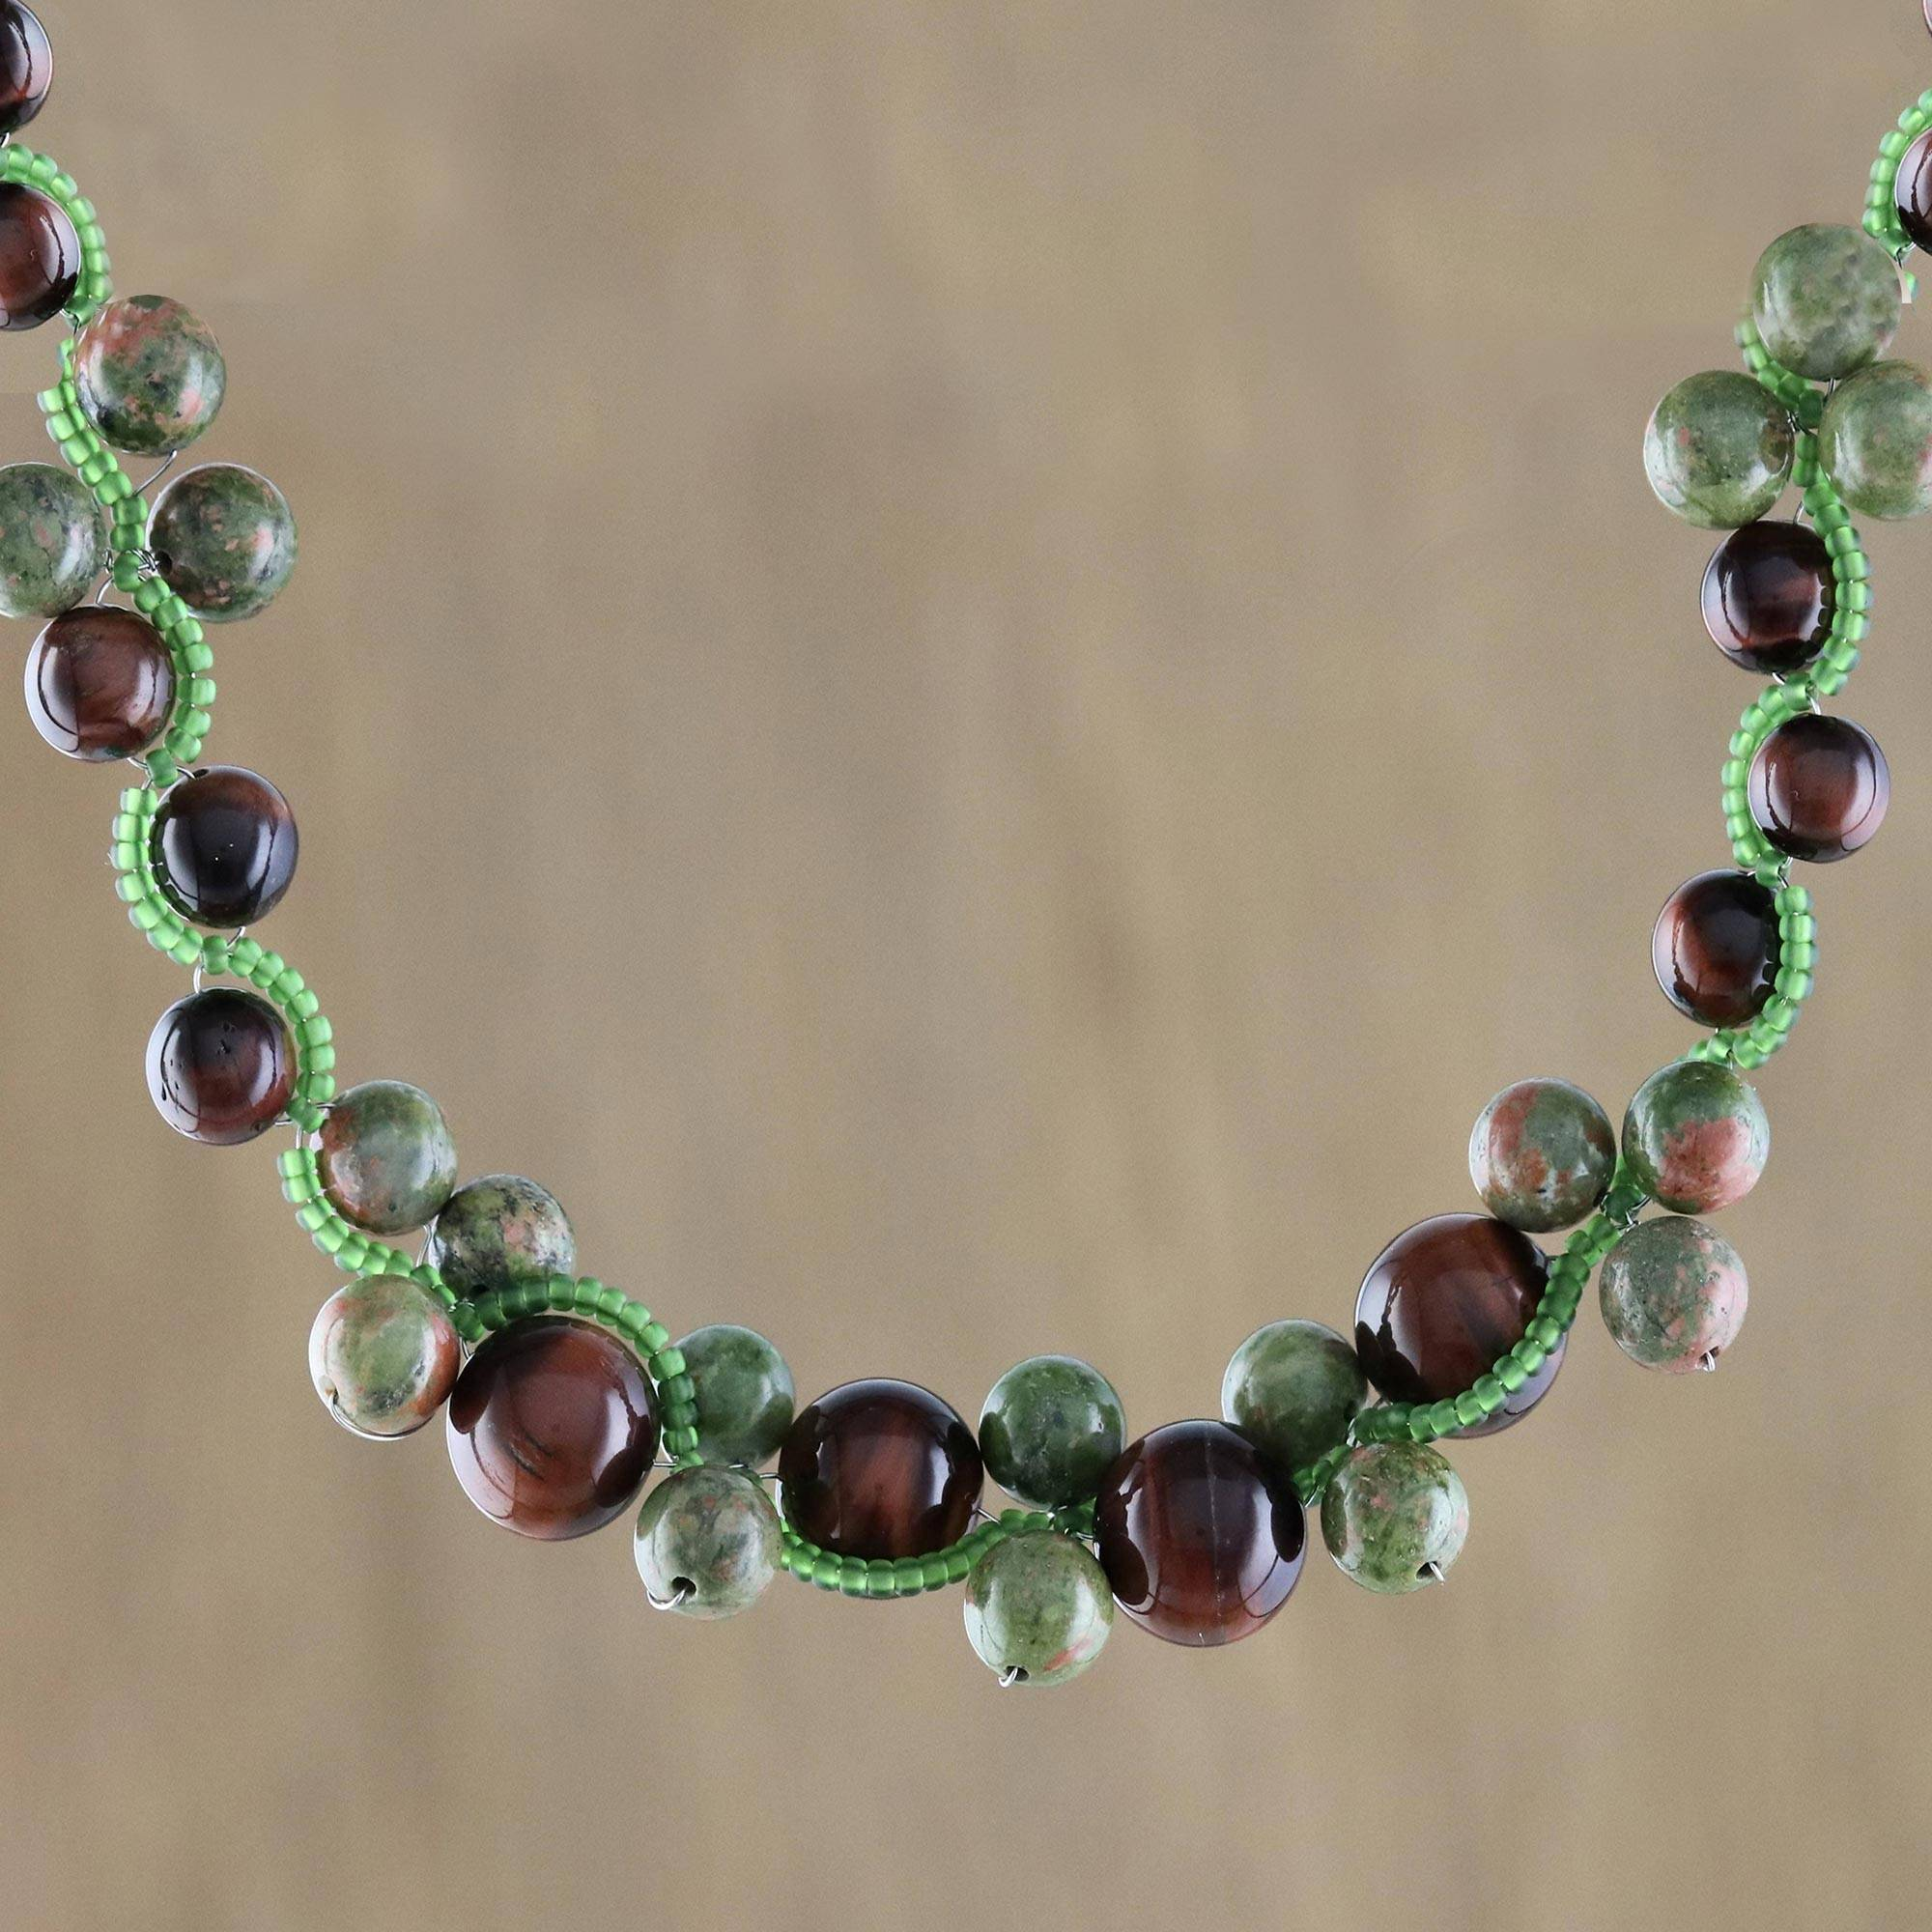 Select By Choice Designer Natural Tiger Eye Gemstone Mix Shape Smooth Beads 5-25 mm 18 Inches long beaded Necklace For Gift